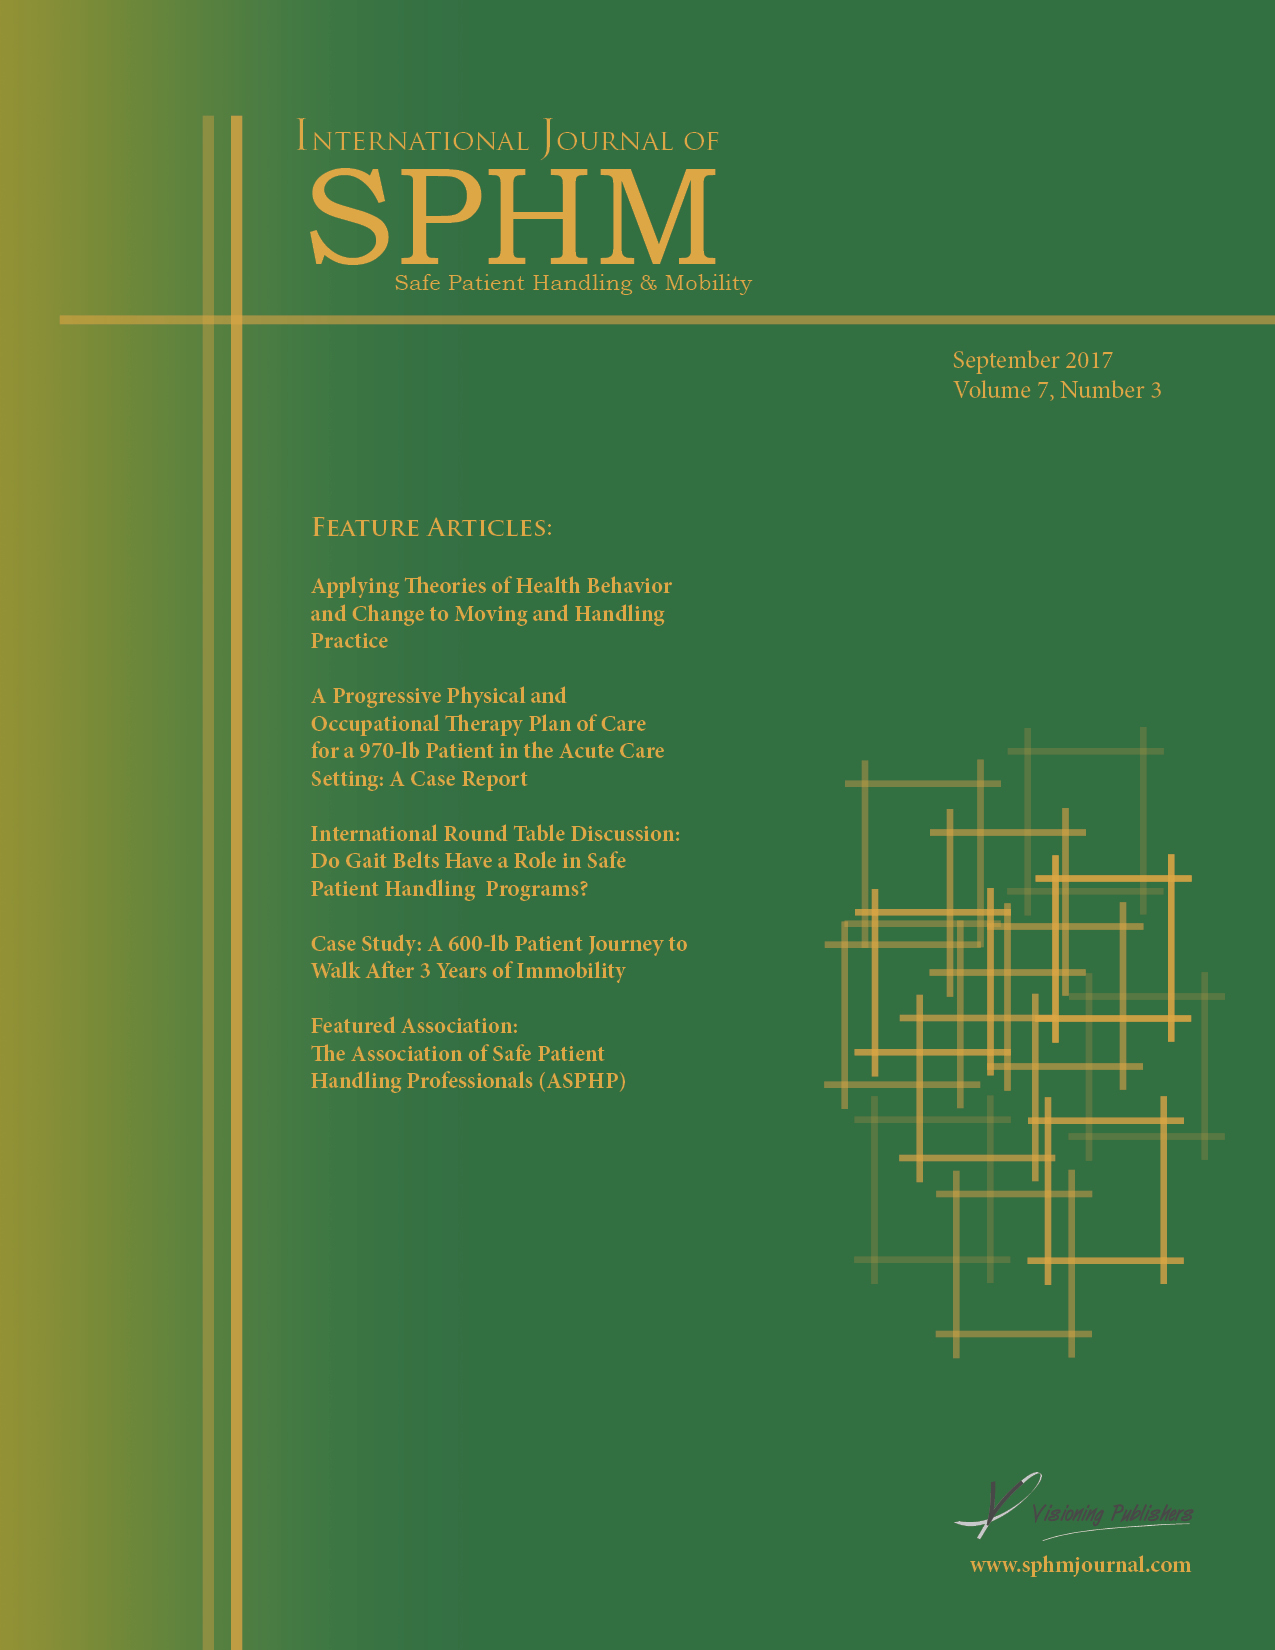 IJSPHM Cover Image